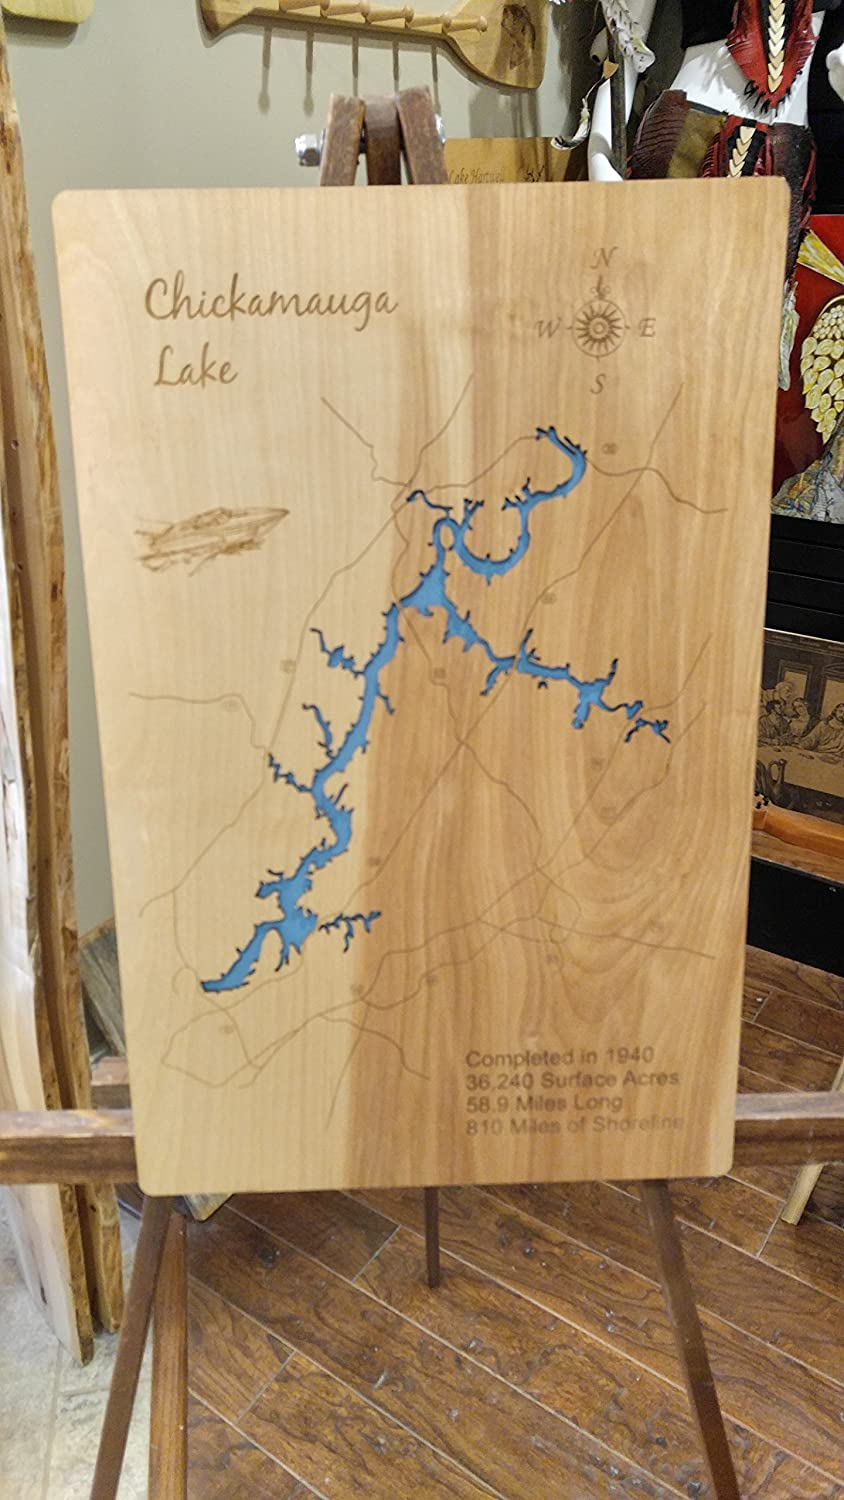 Amazon.com: Chickamauga Lake, Tennessee: Standout Wood Map Wall ...